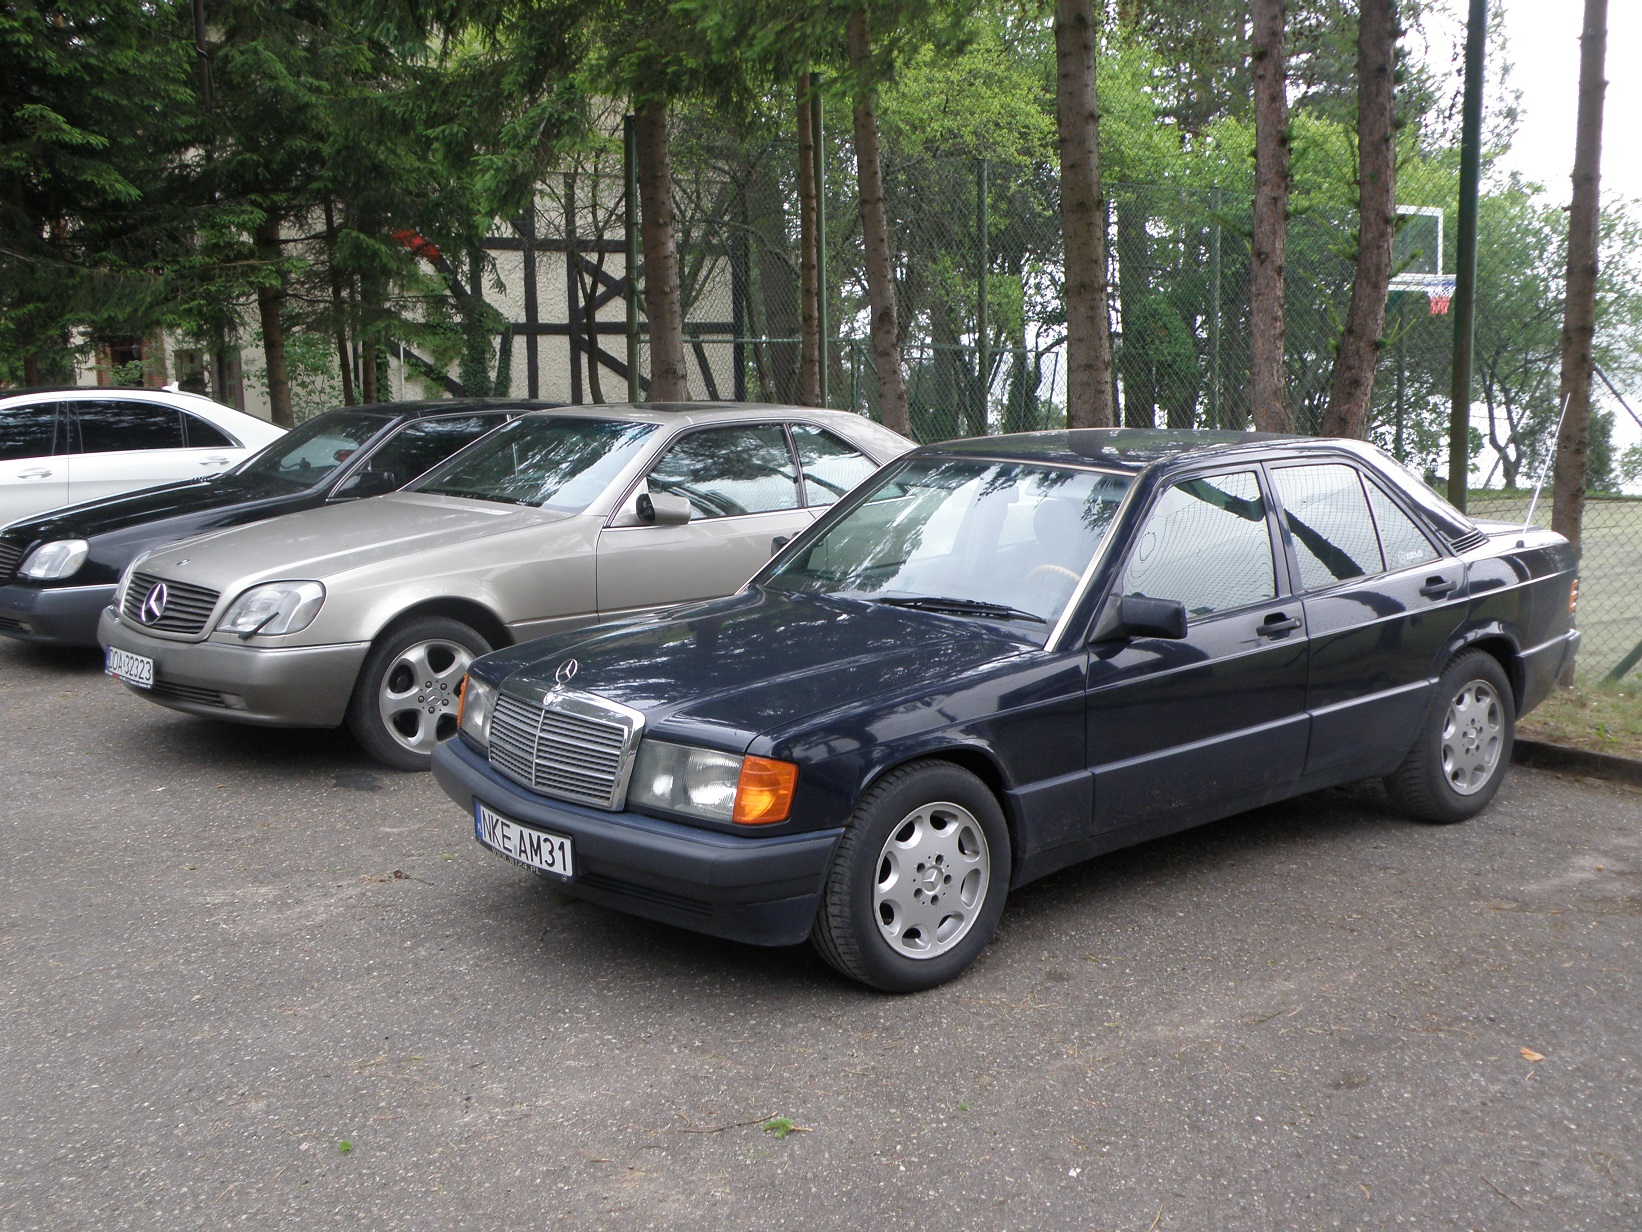 http://124coupe.pl/hosting/images/1498983465.jpg